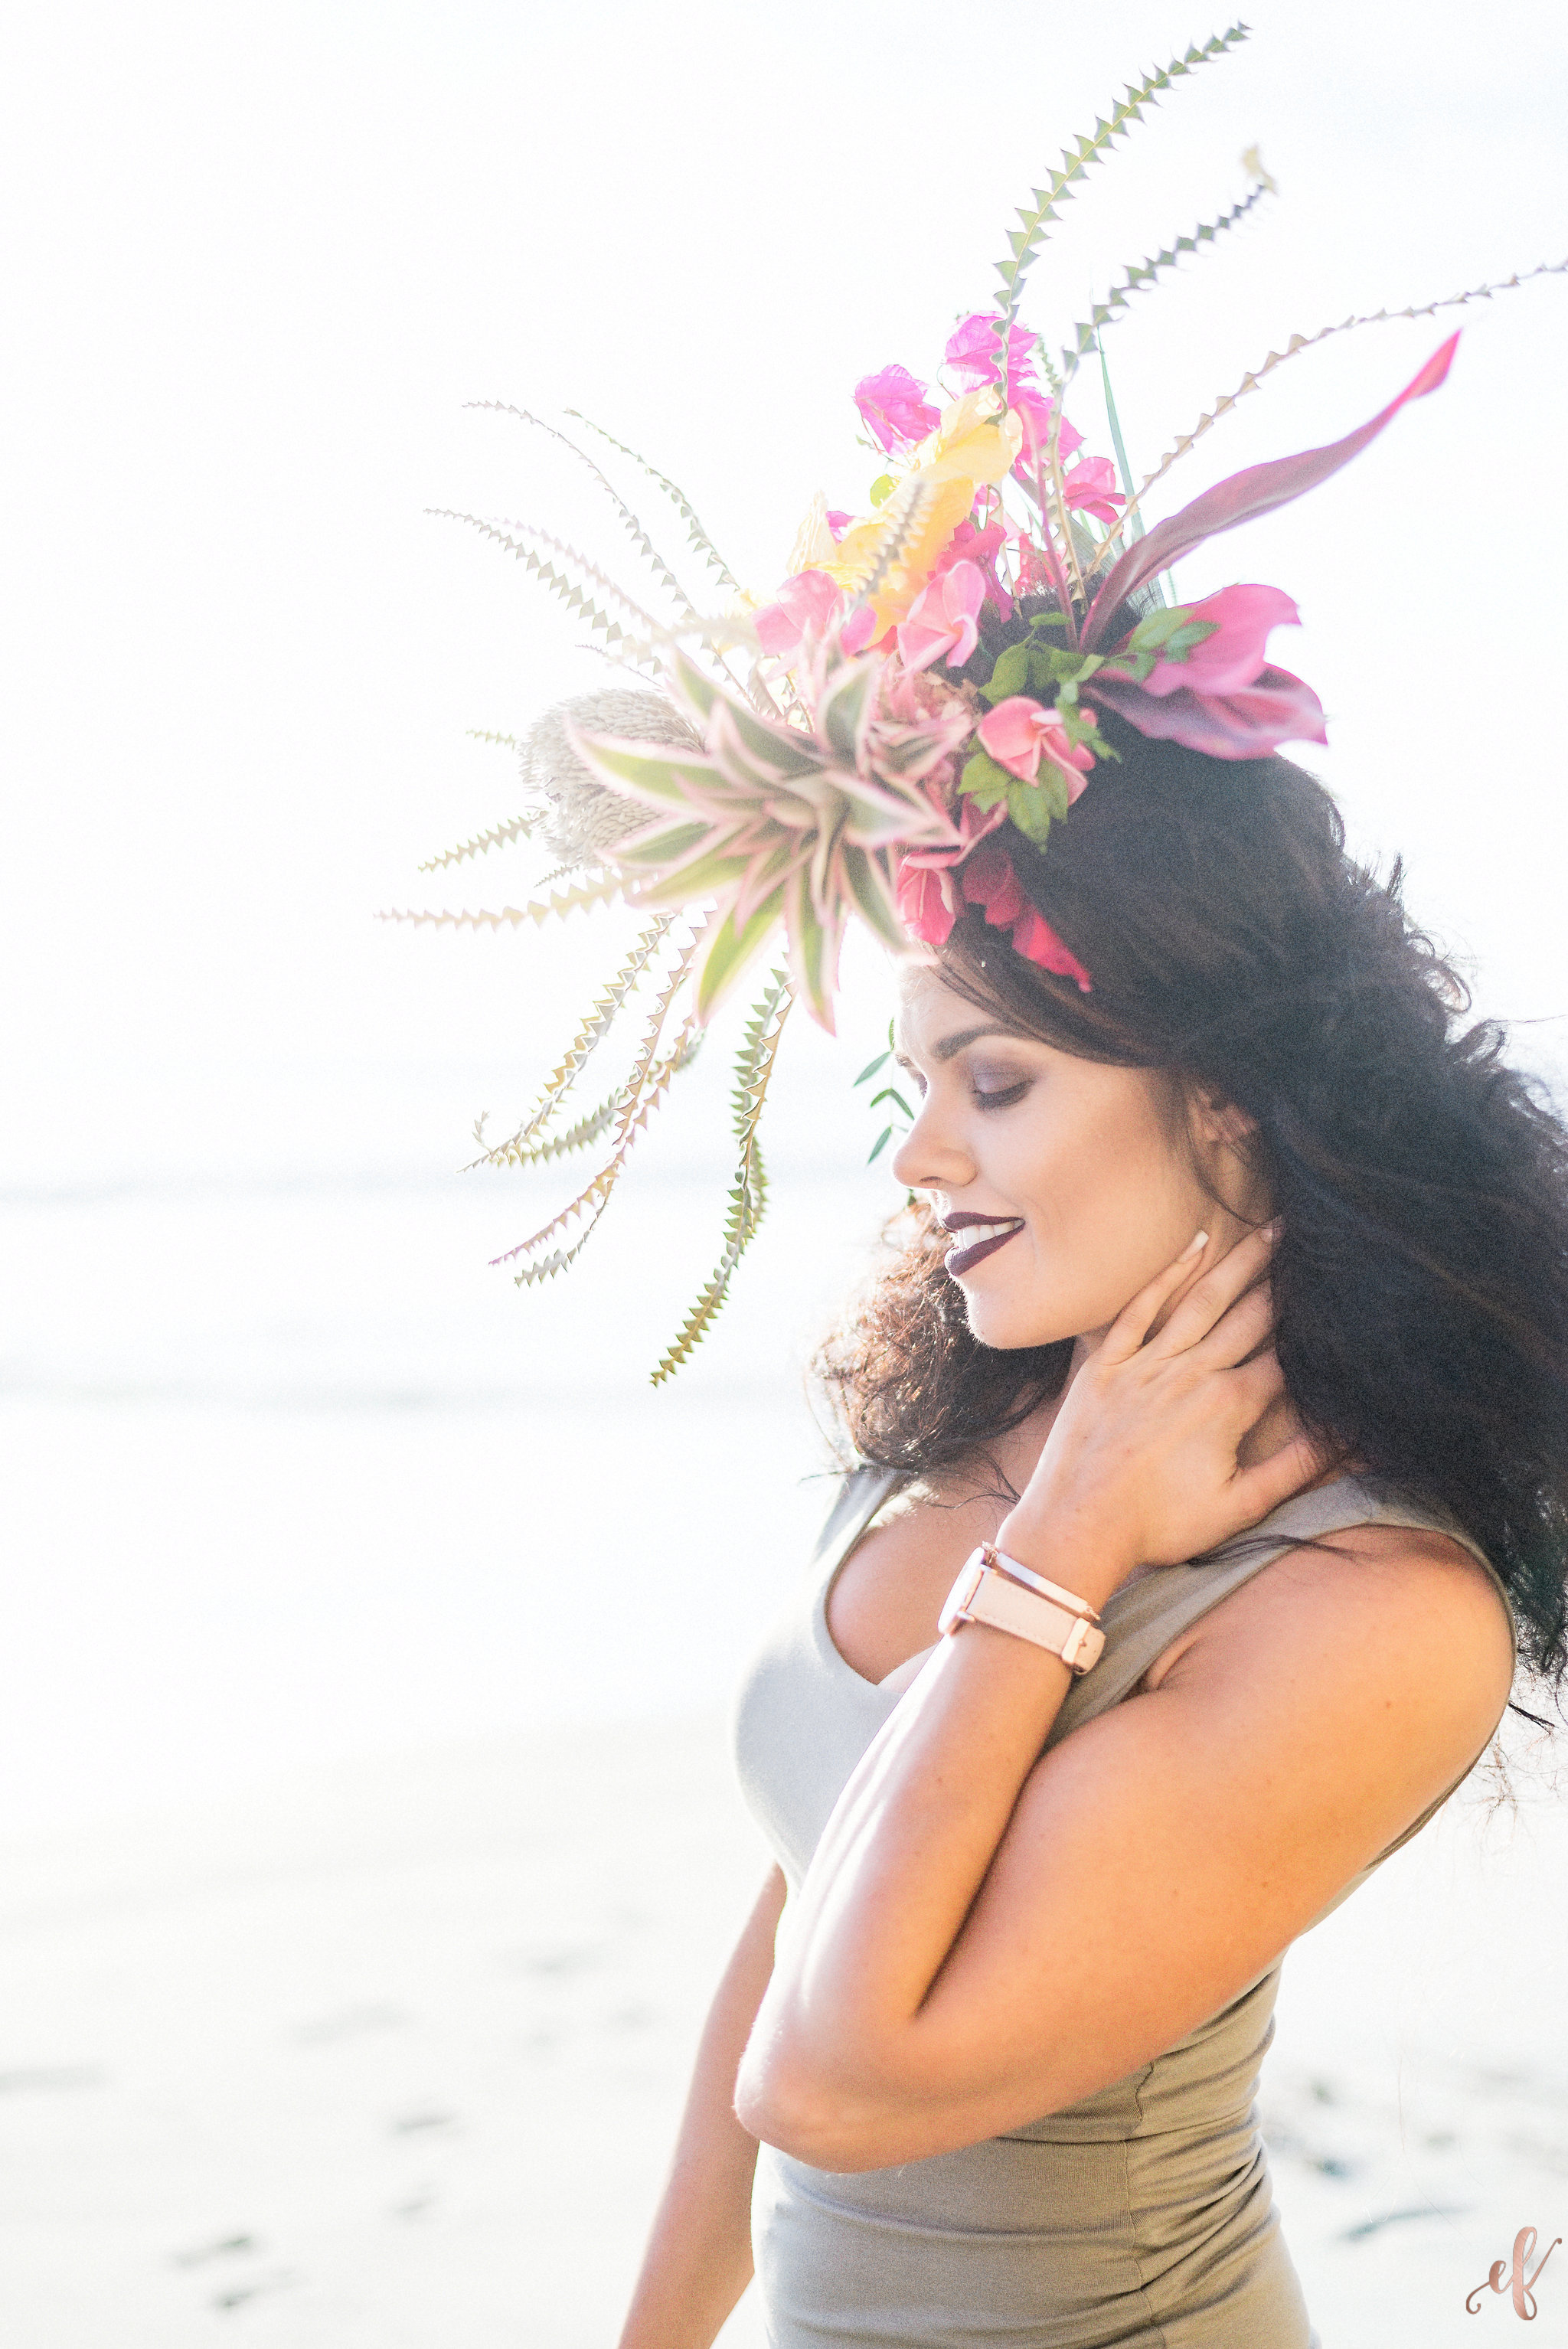 San Diego Portrait Photographer | Flower Crown | Ernie & Fiona | Rae Florae